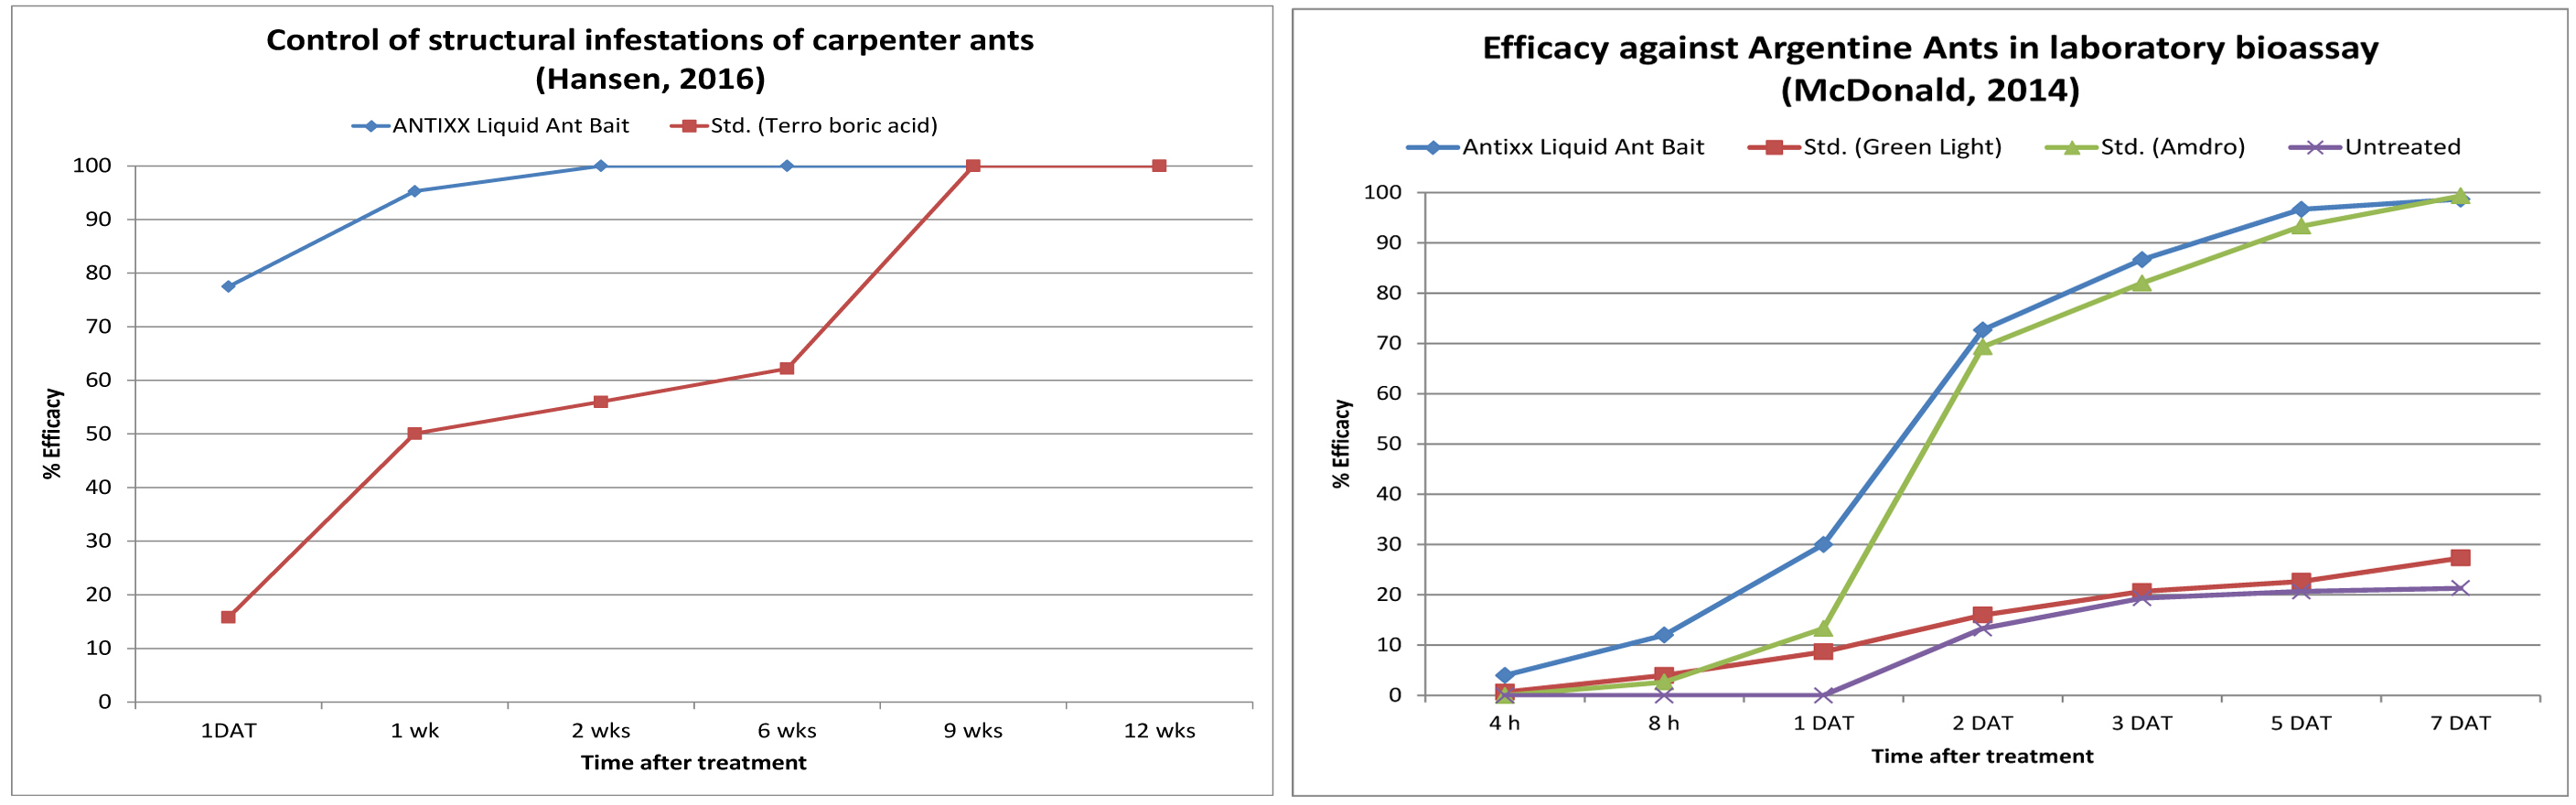 Antixx Liquid Ant Bait Studies vs Boric Acid